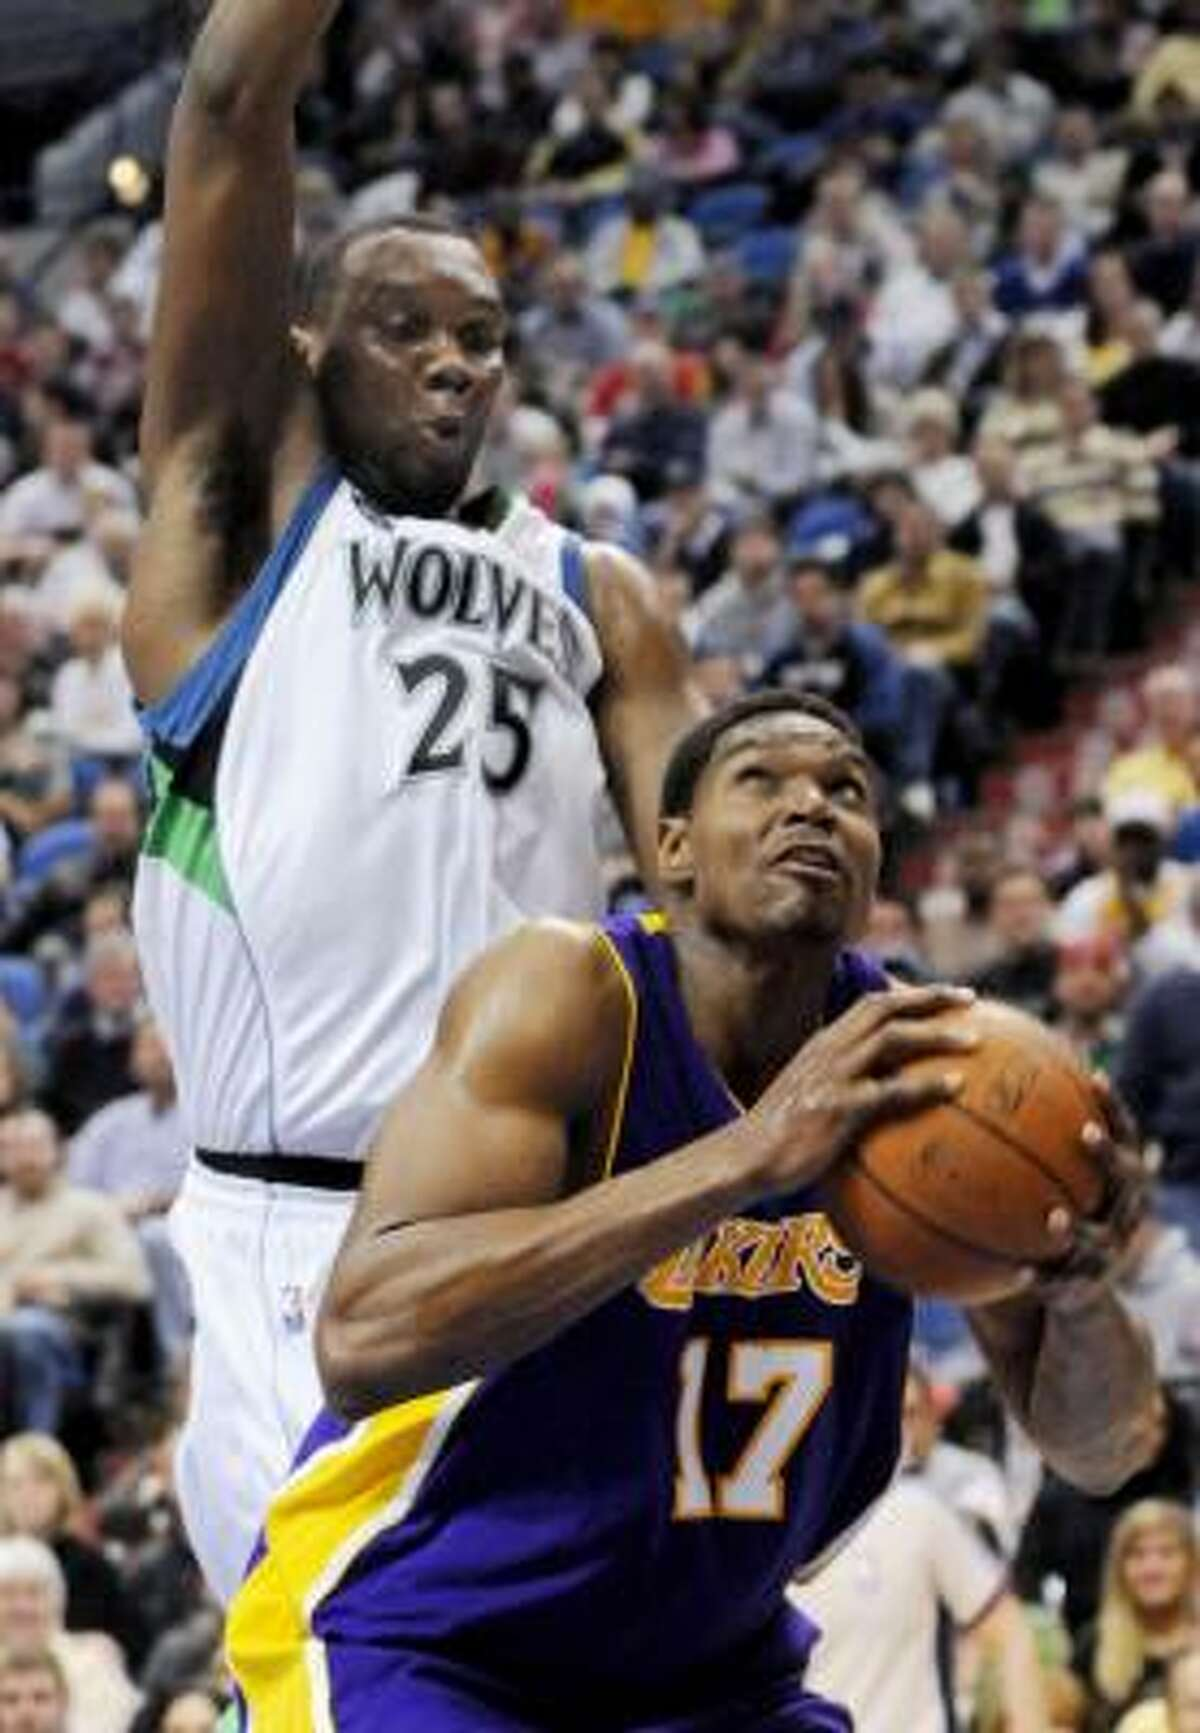 1 - LOS ANGELES LAKERS - (Last rank: 2) - 62-16 - They are just about ready to get serious. How long will it take before Bynum is ready to contribute as he was before he injured his knee?